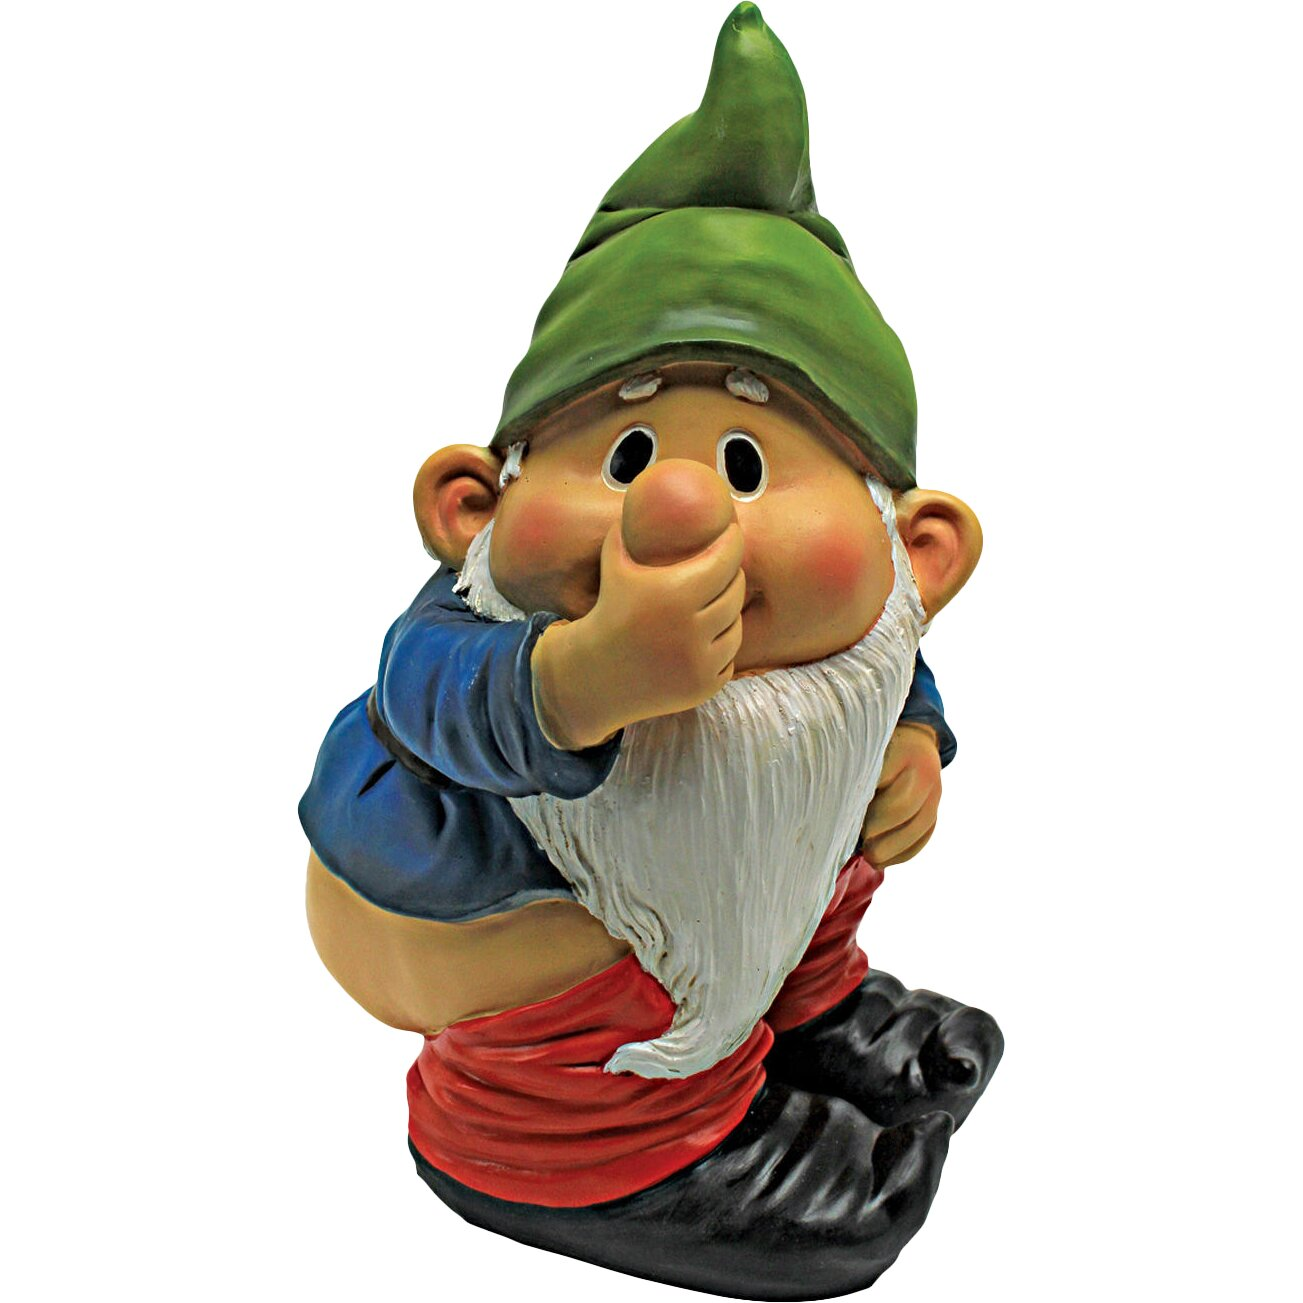 Design Toscano Stinky The Garden Gnome Statue Amp Reviews